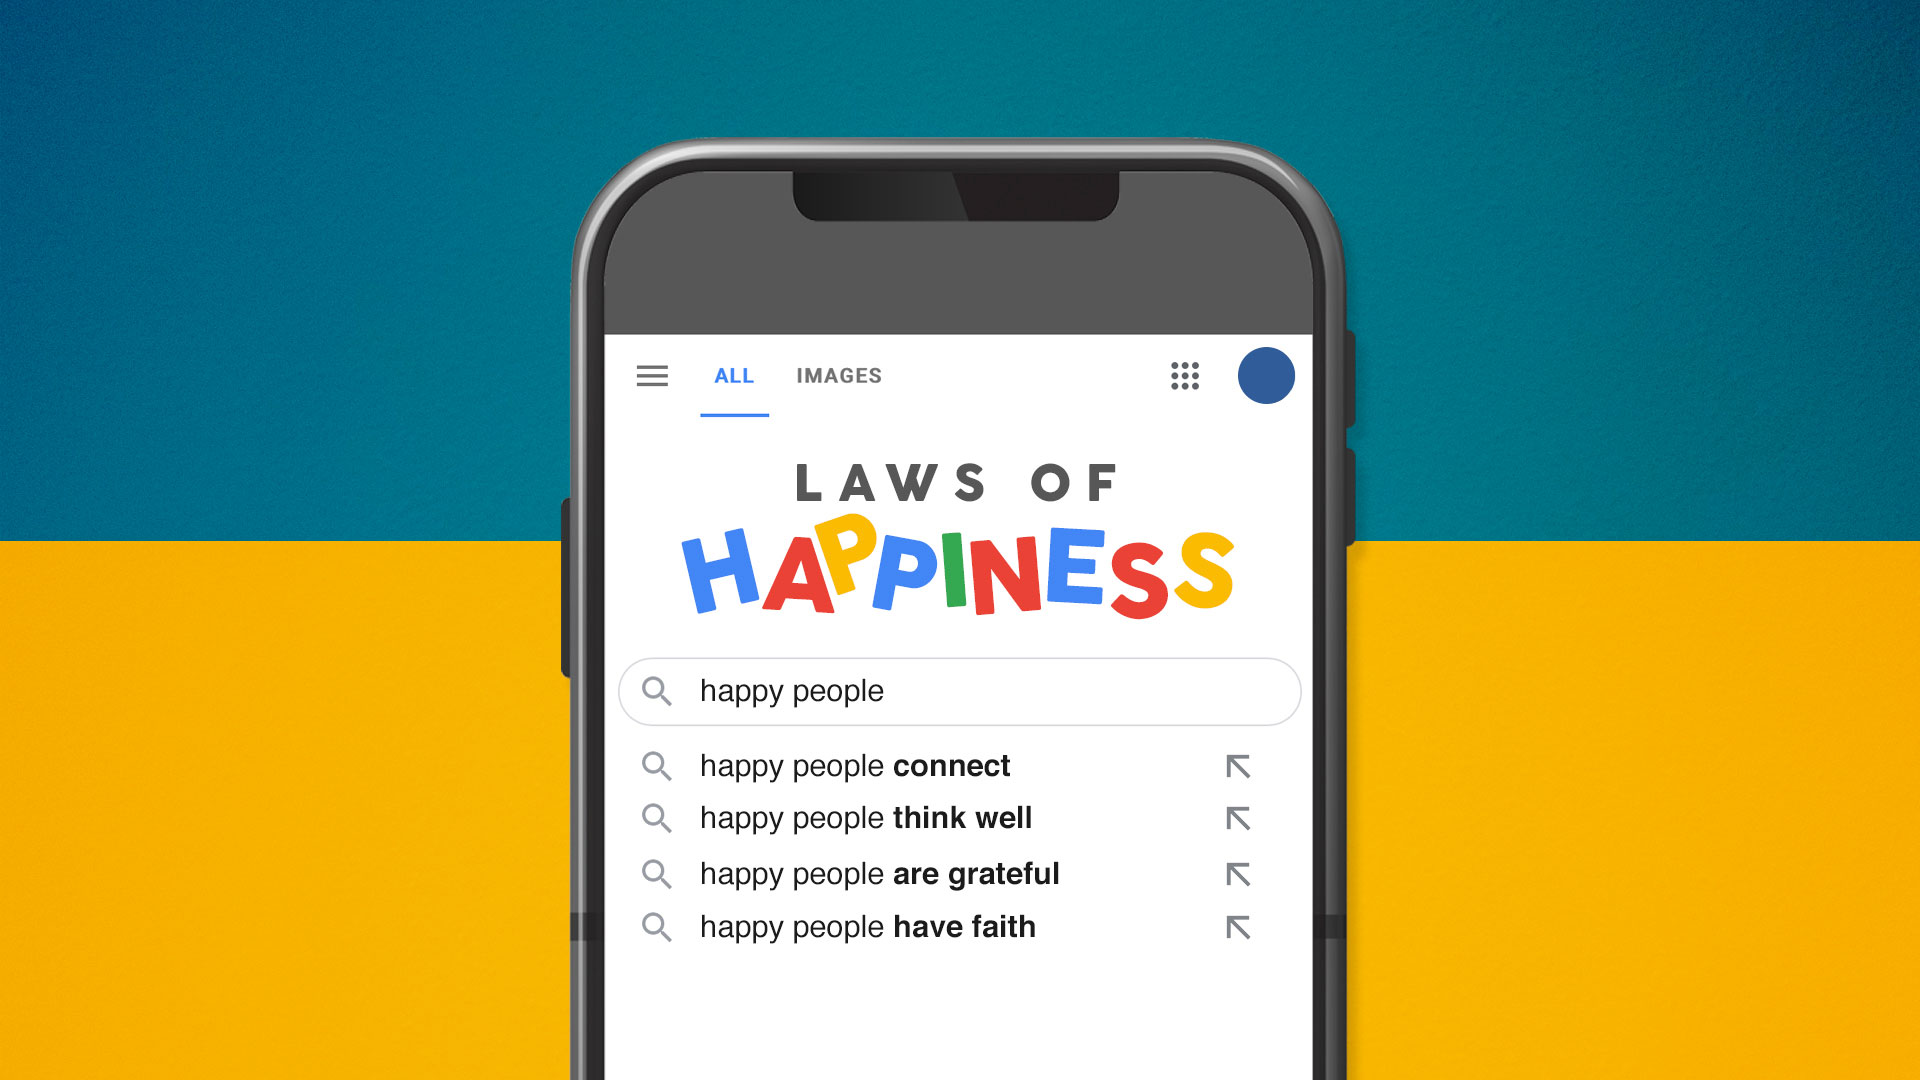 Happy People Think Well